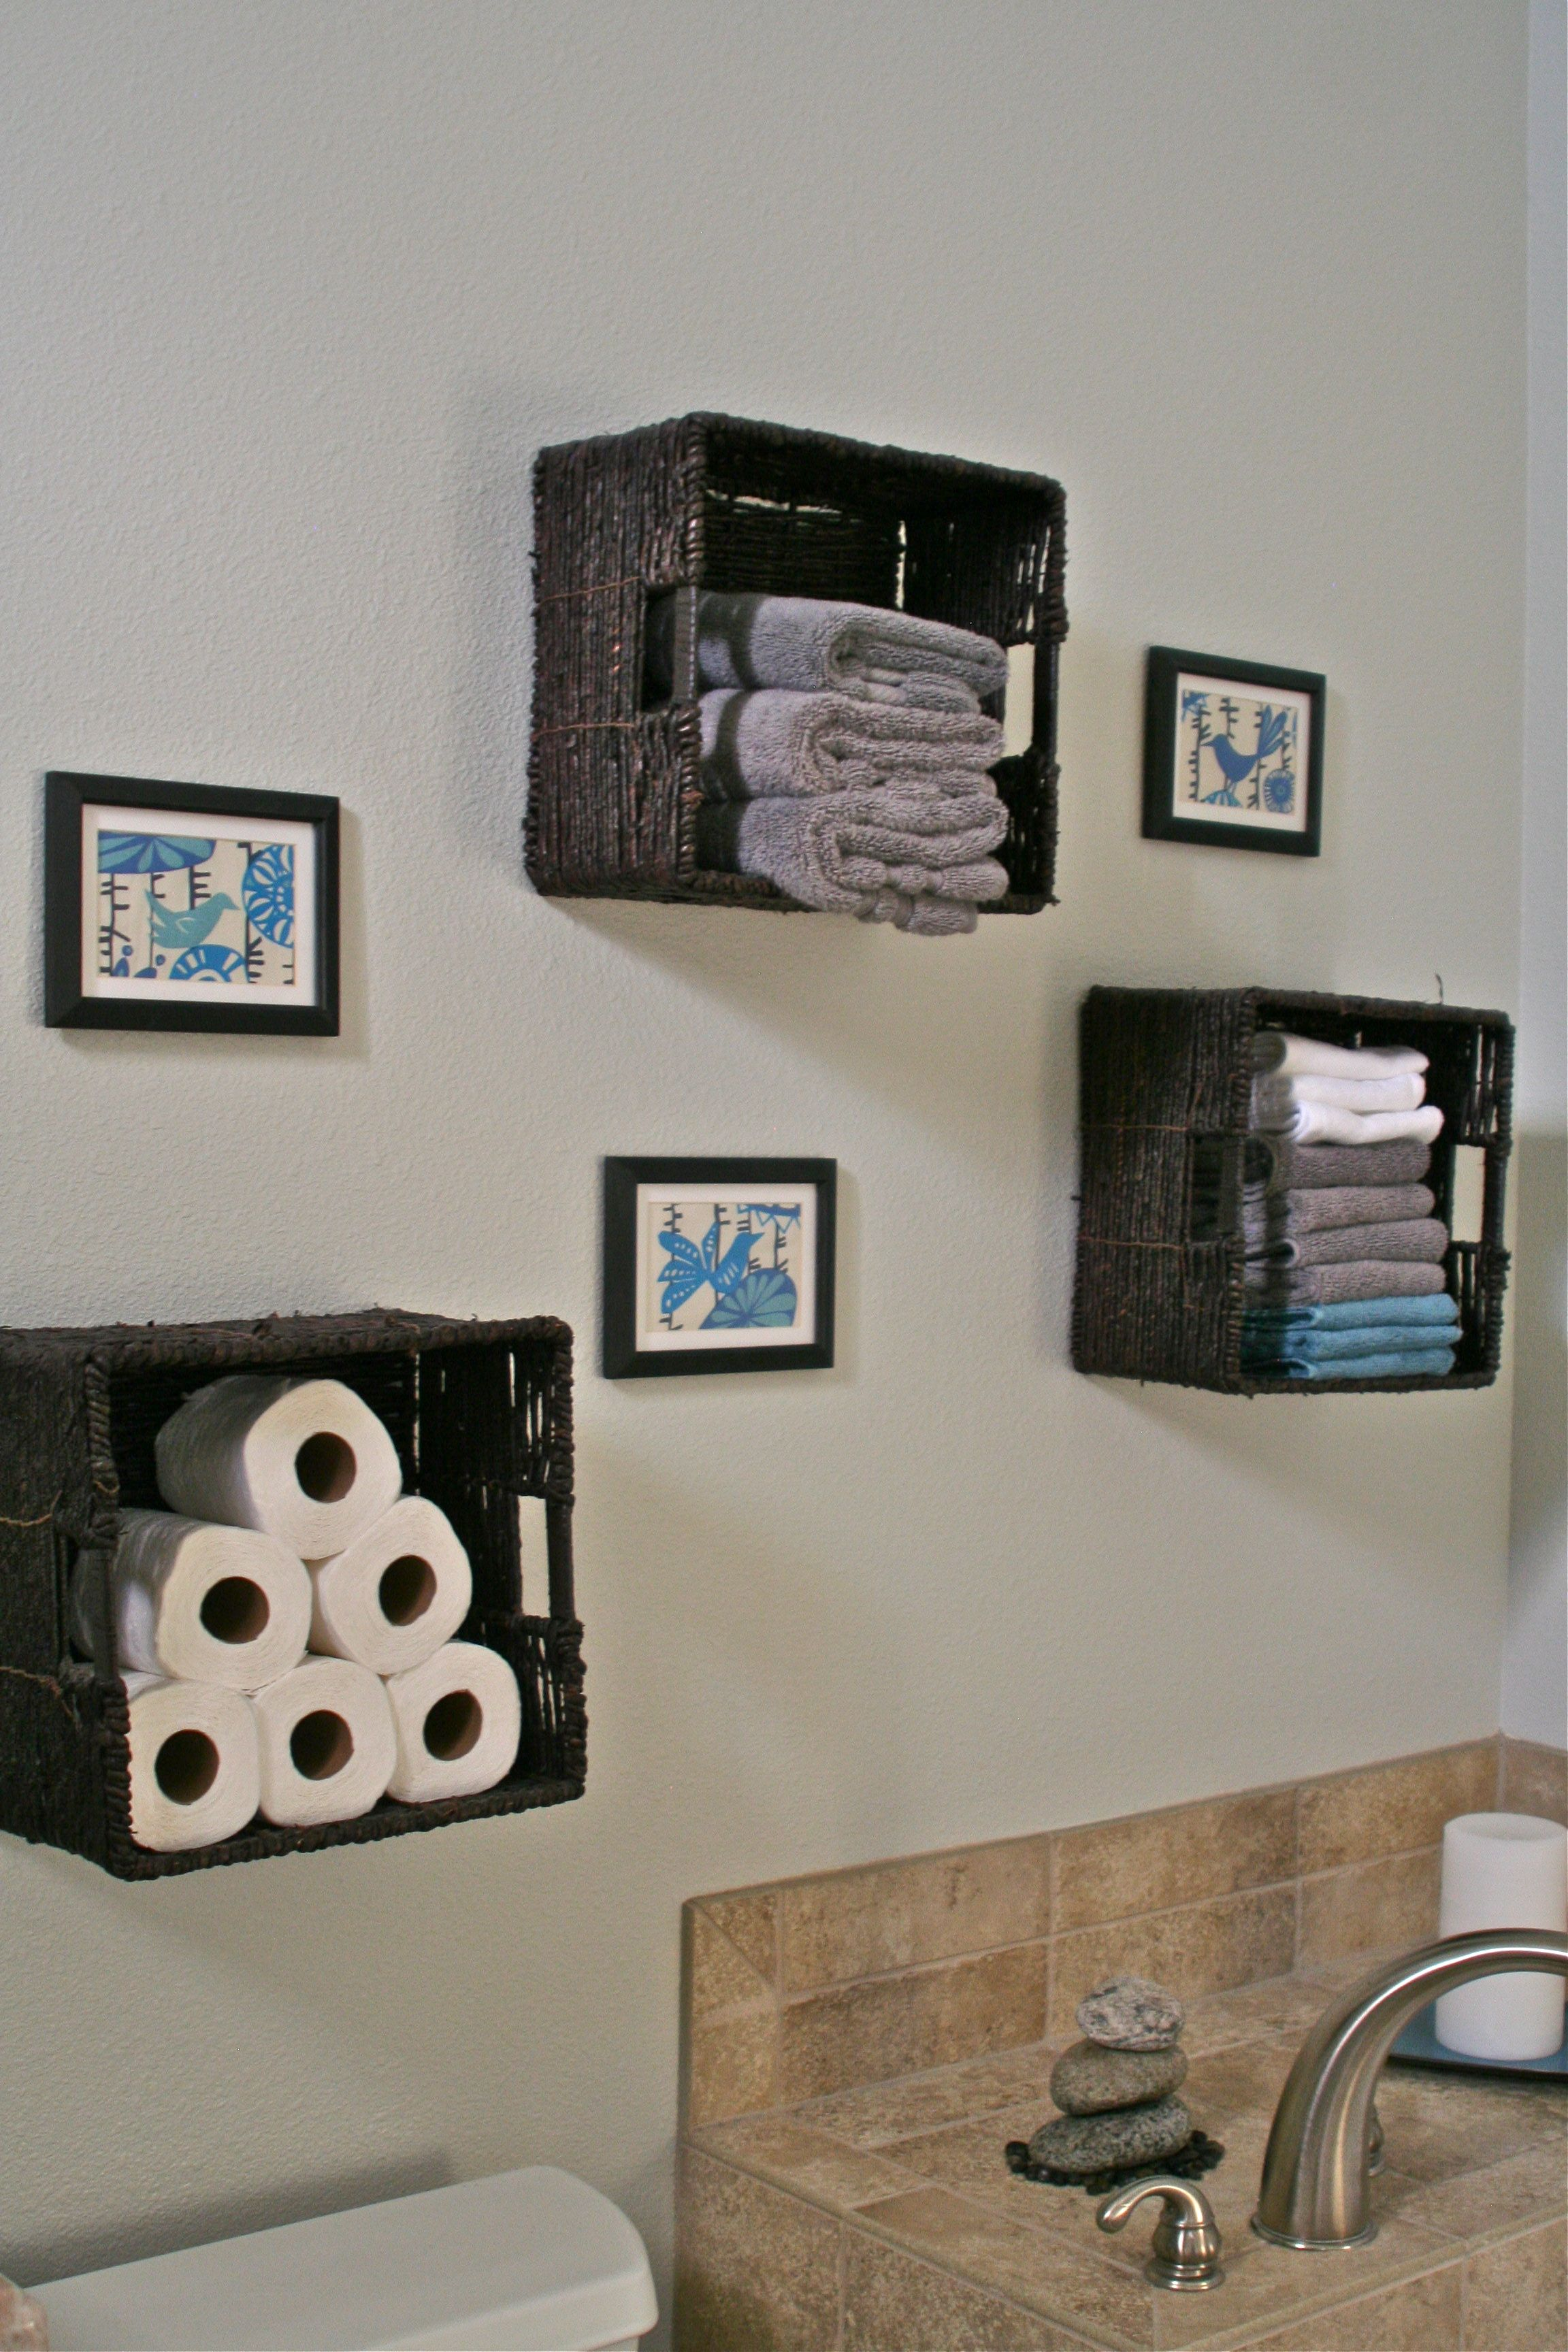 Bathroom storage - baskets for towels toilet paper etc Love the teal! & Bathroom storage - baskets for towels toilet paper etc Love the ...